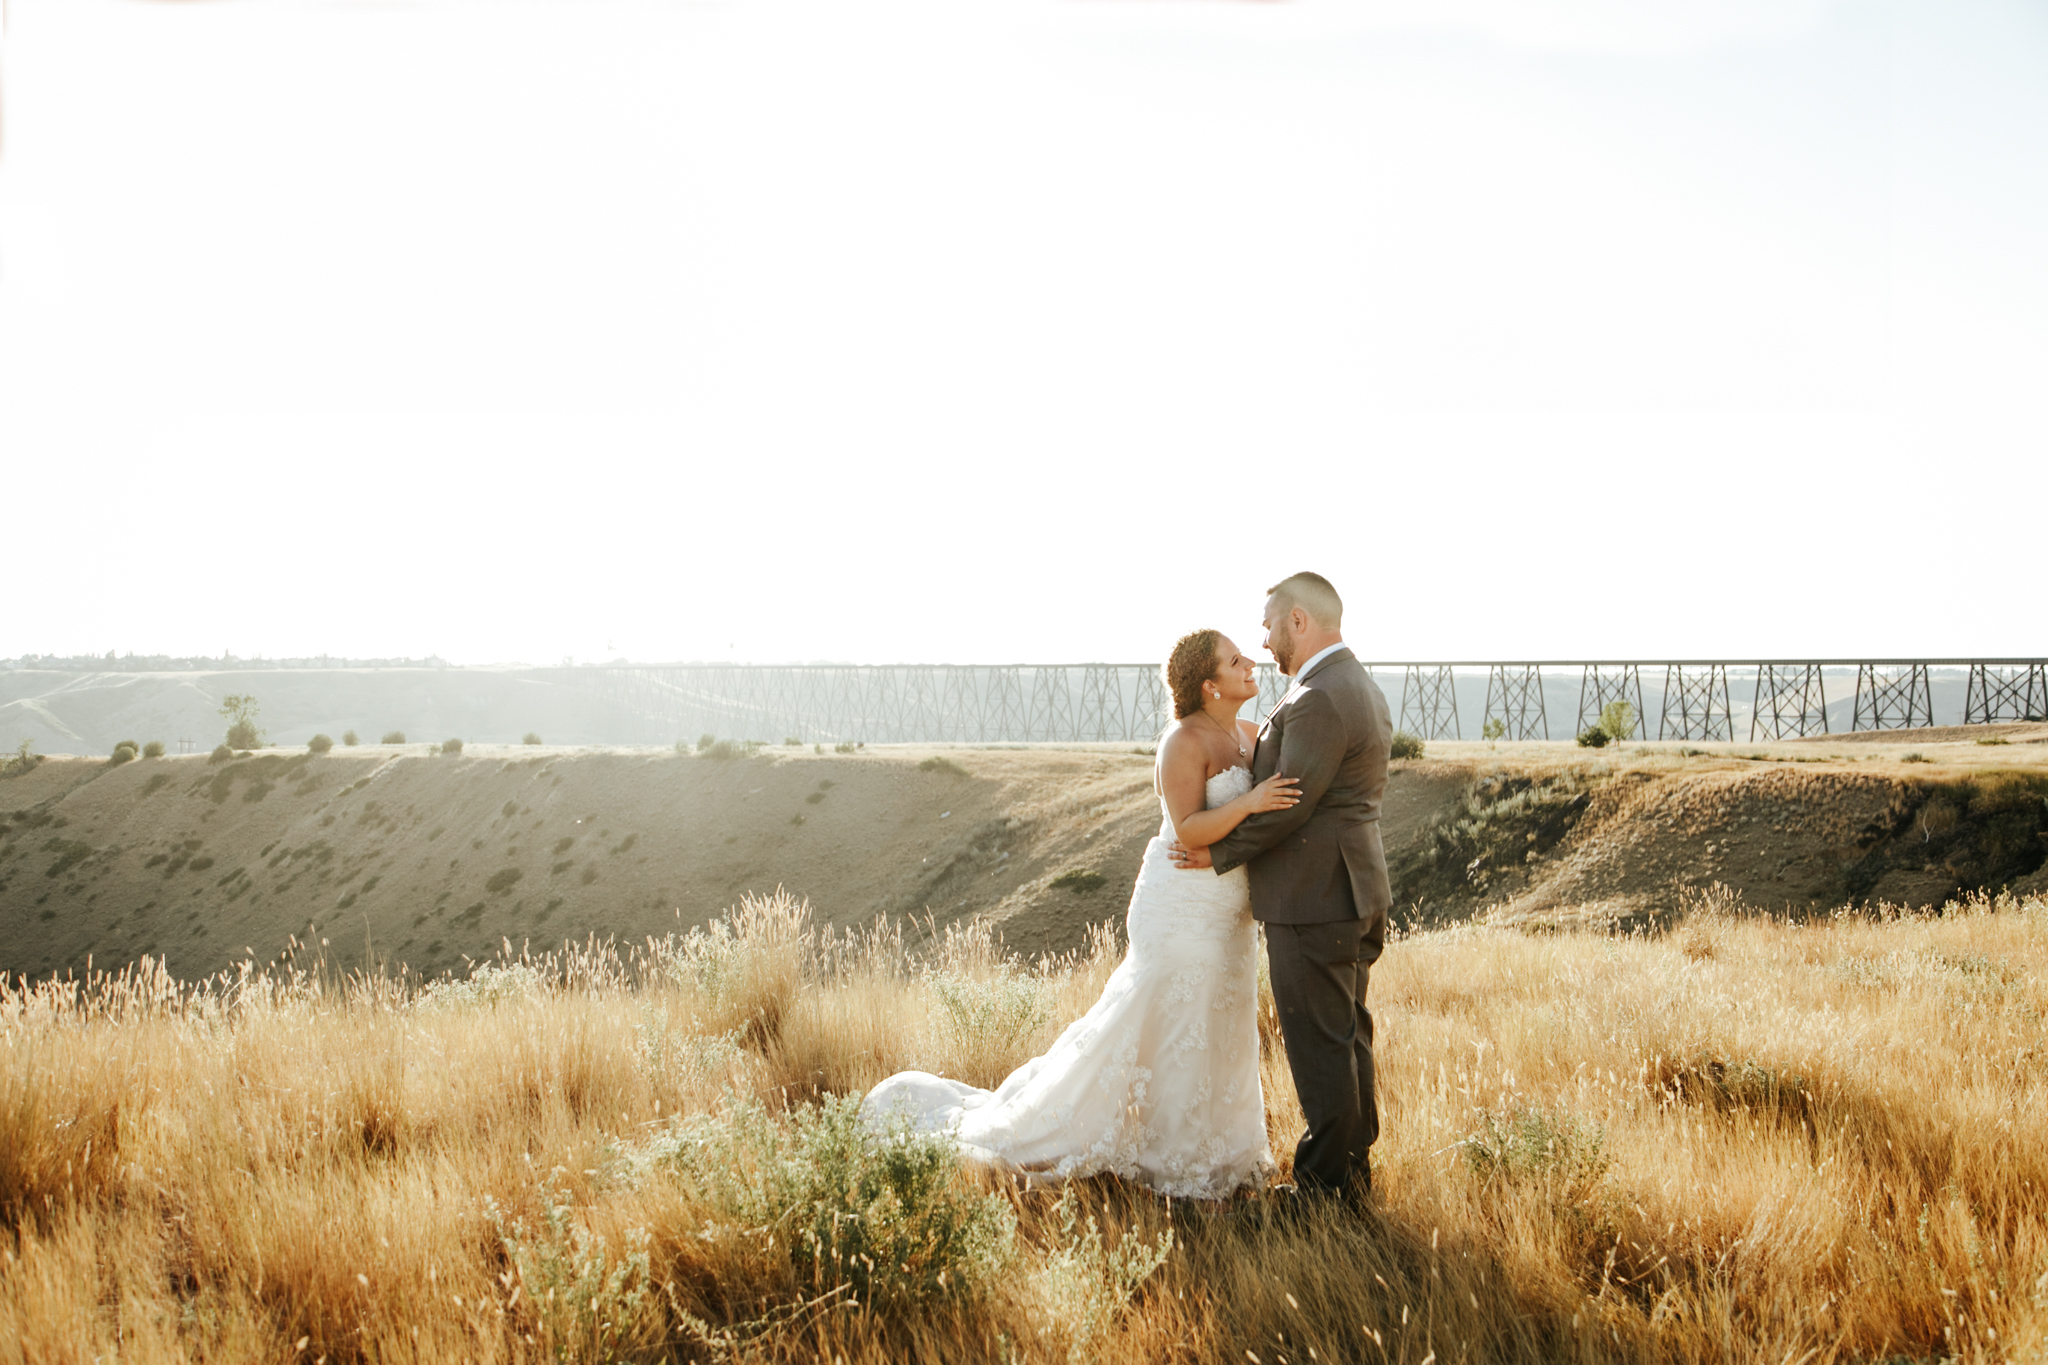 lethbridge-wedding-photographer-love-and-be-loved-photography-trent-danielle-galt-reception-picture-image-photo-199.jpg